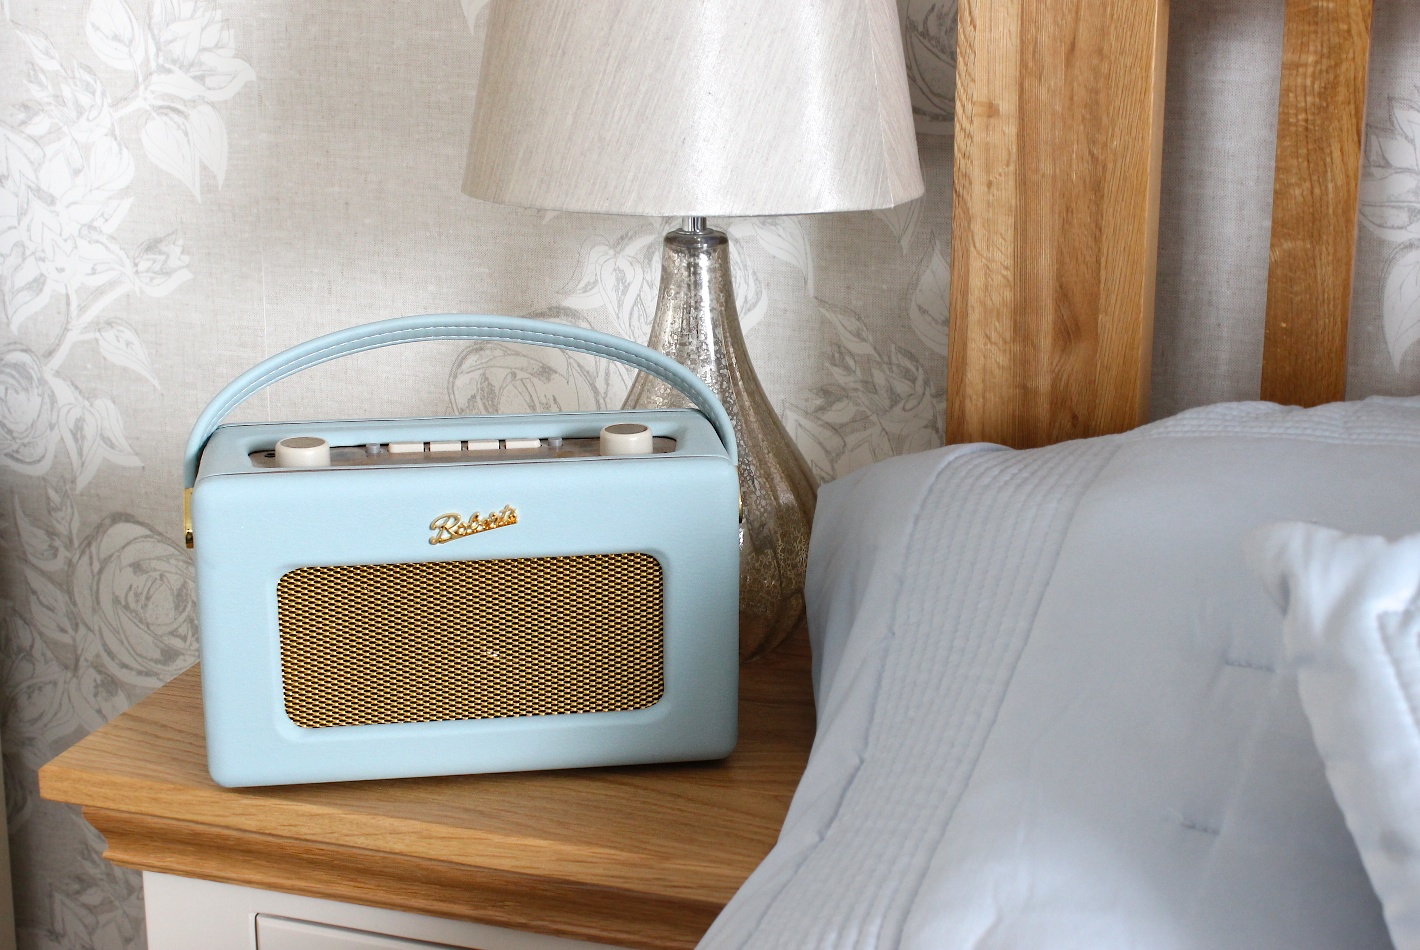 Bedroom Radio. Bedroom Radio